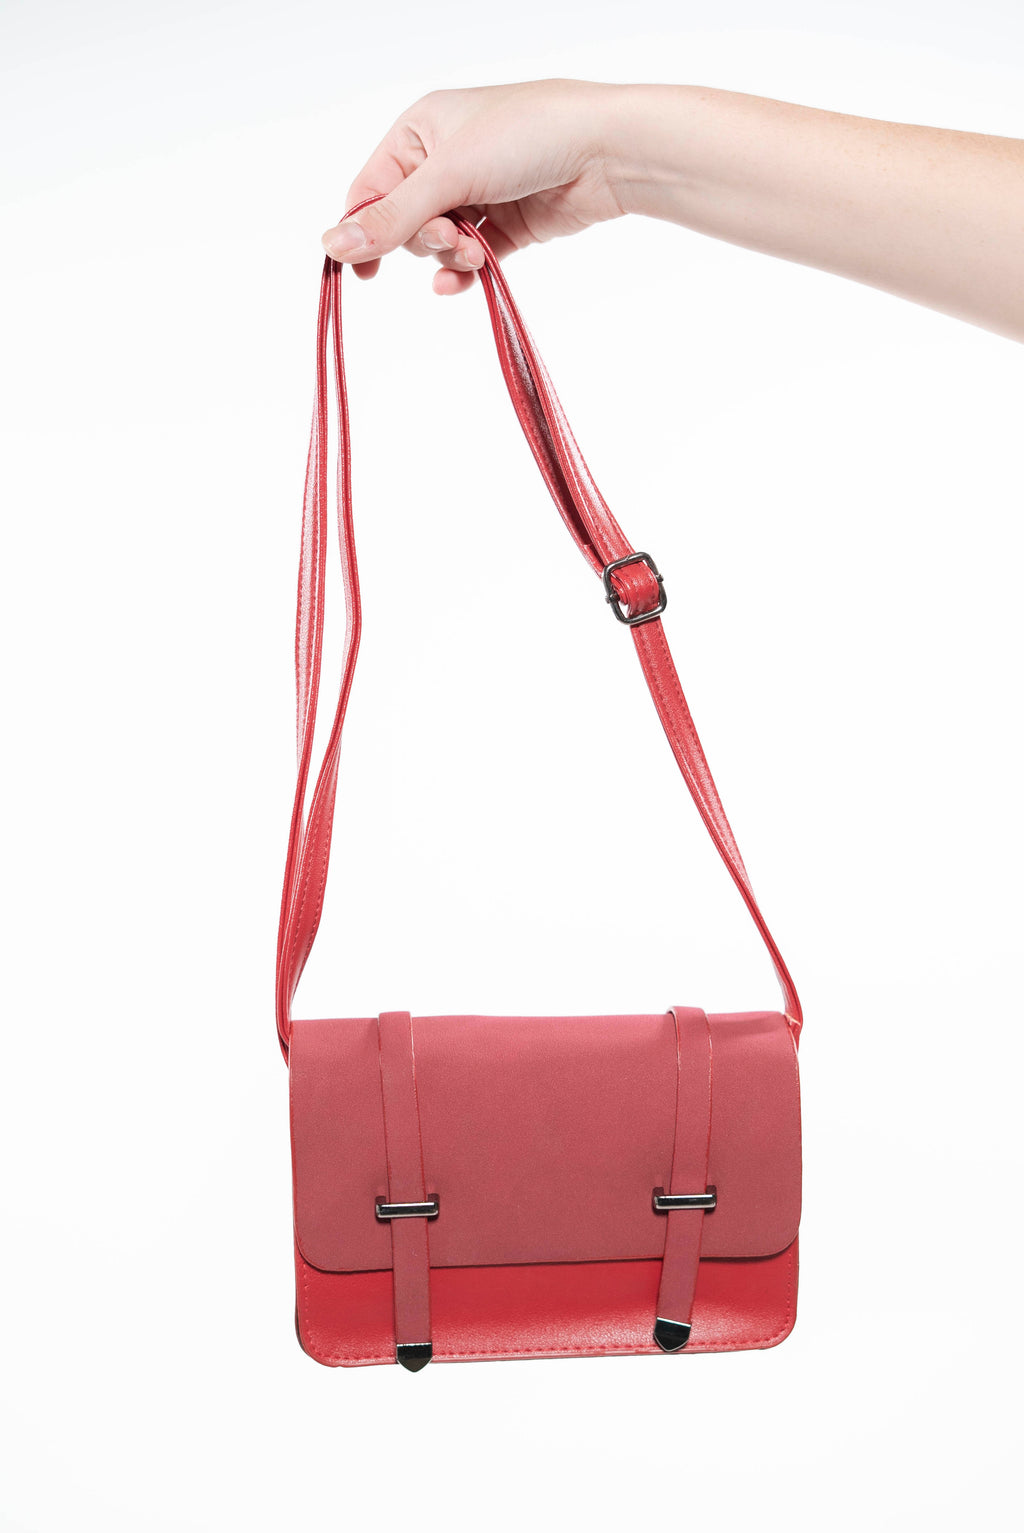 Square Flap Cross Body Messenger Bag Red